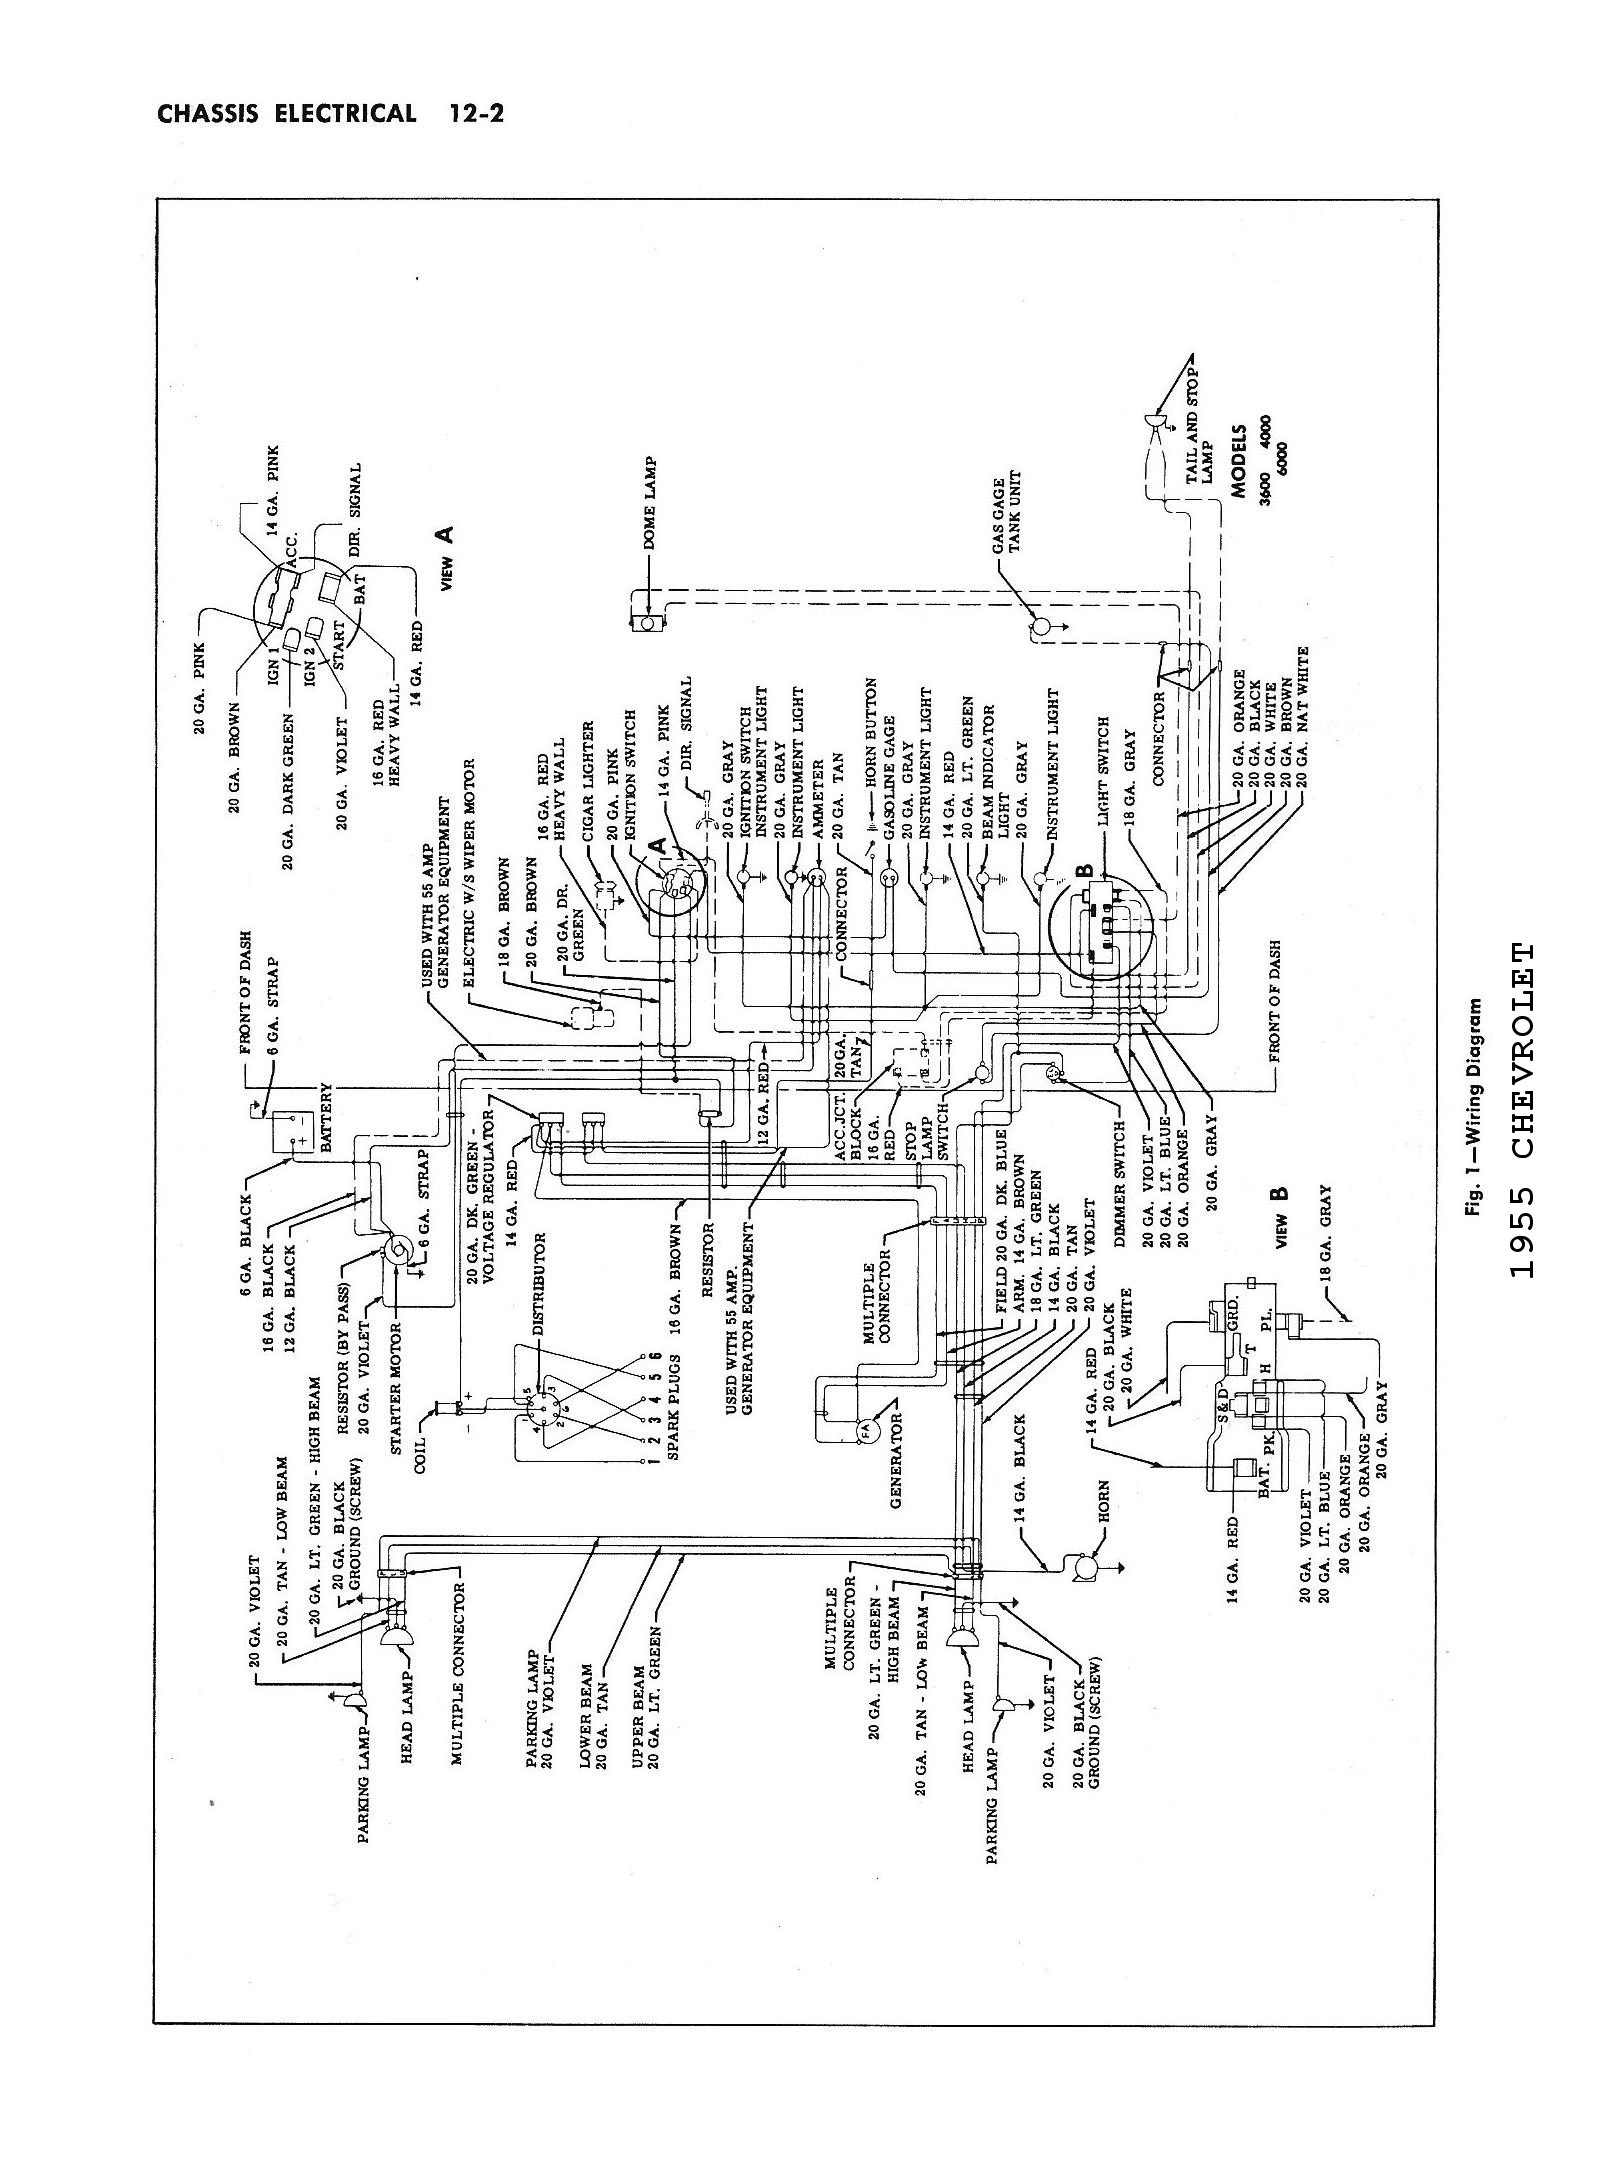 55ctsm1202 chevy wiring diagrams chevy truck wiring diagram at eliteediting.co